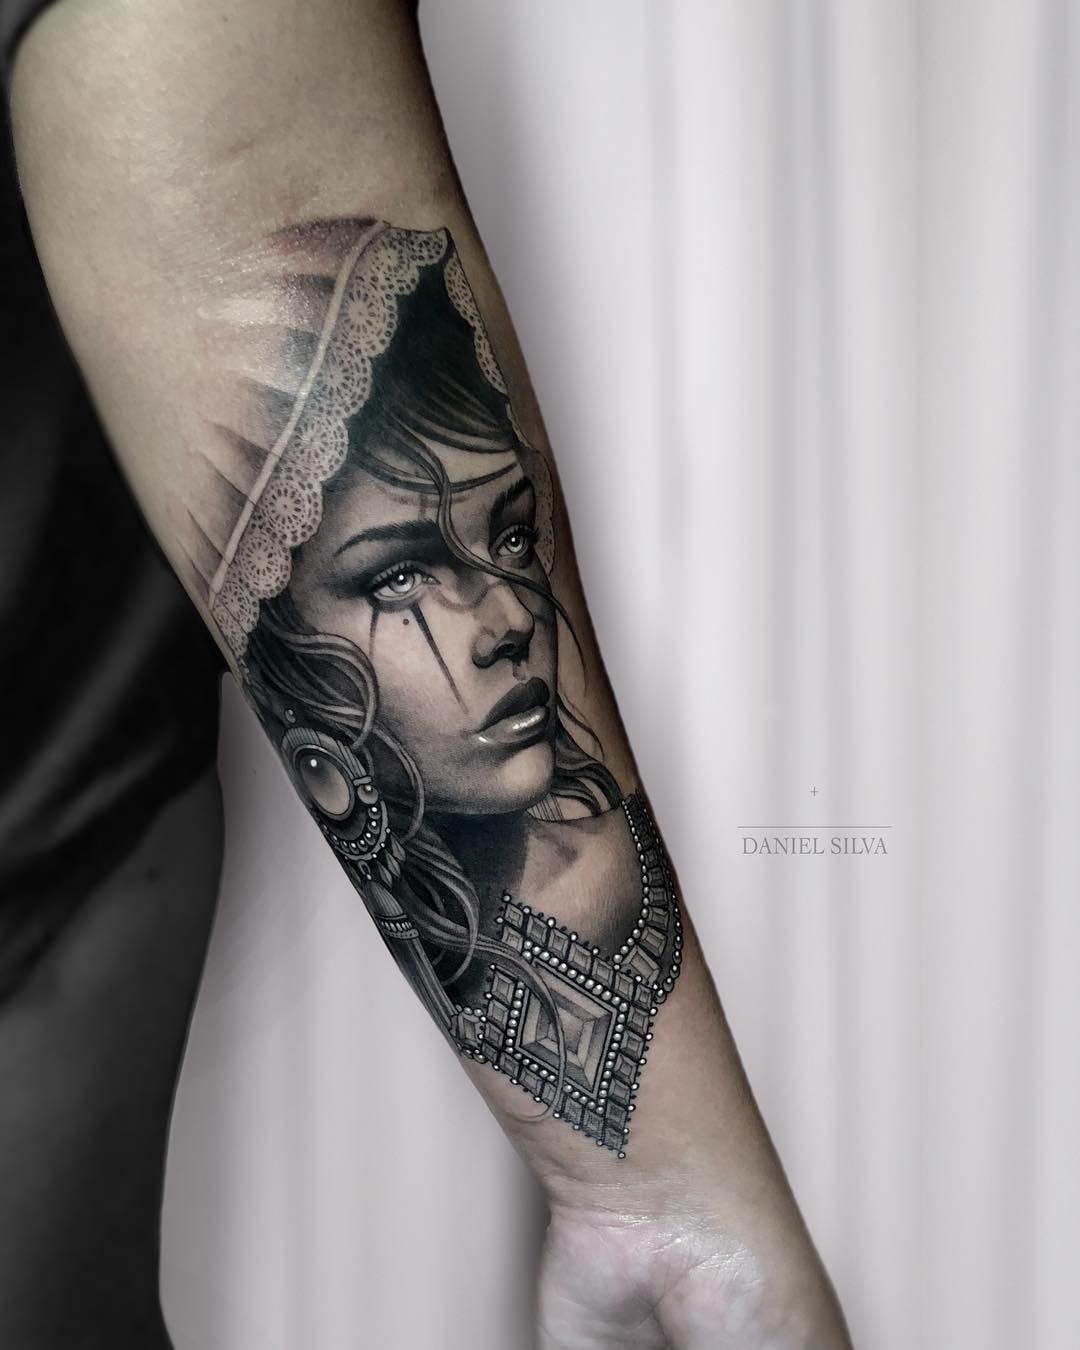 Tattoo By Daniel Silva With Images Tattoos Intricate Tattoo